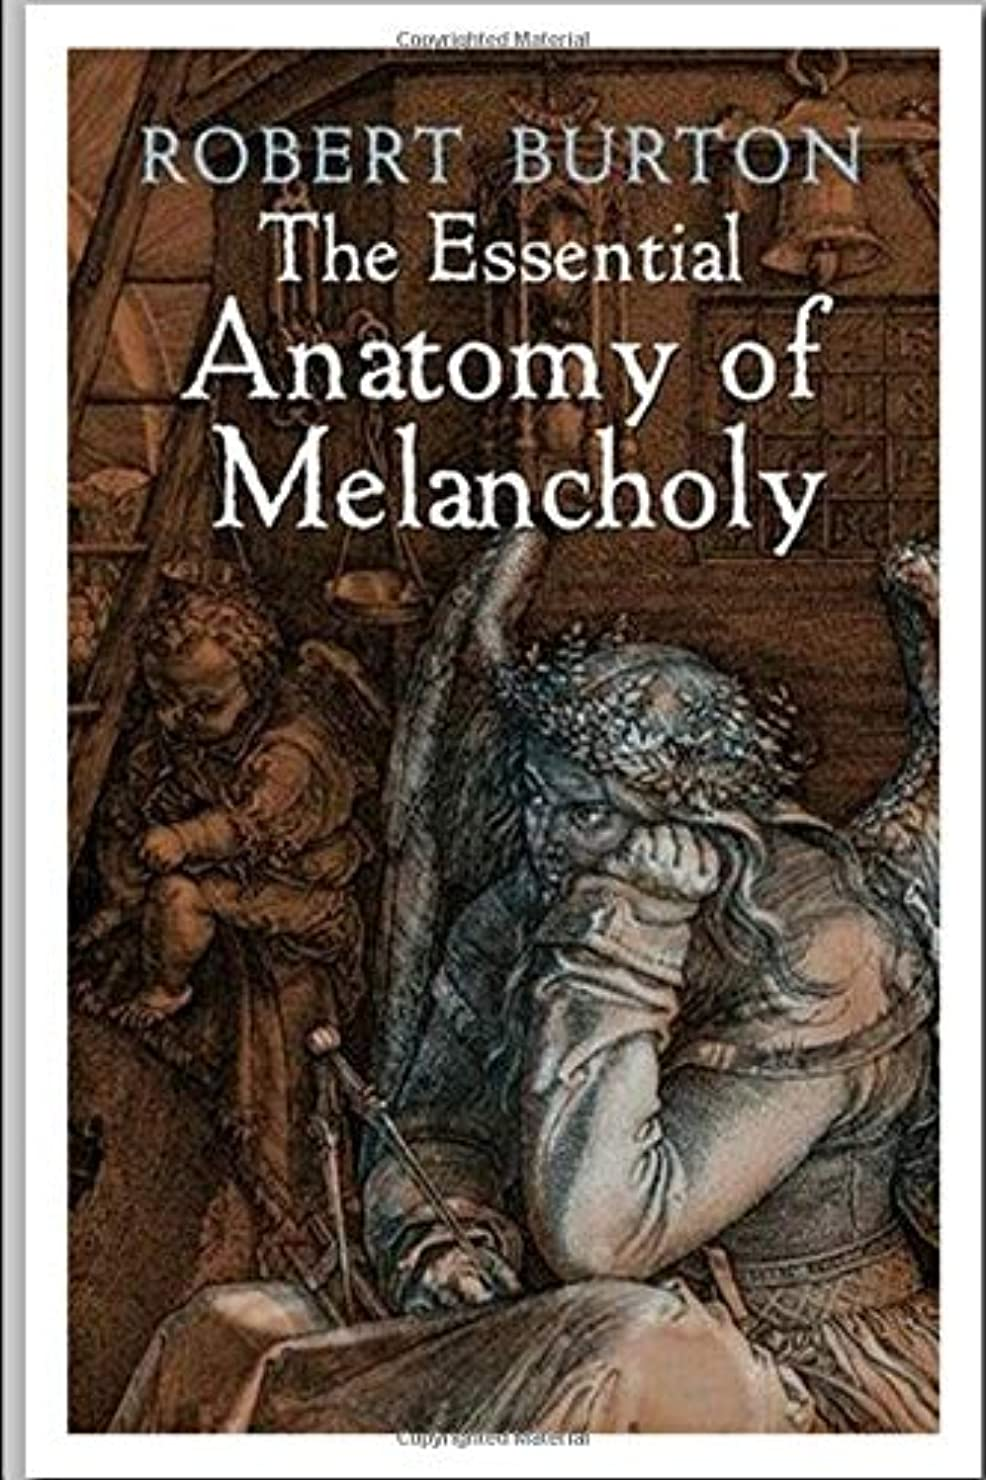 応援する証明書素朴なThe Essential Anatomy of Melancholy